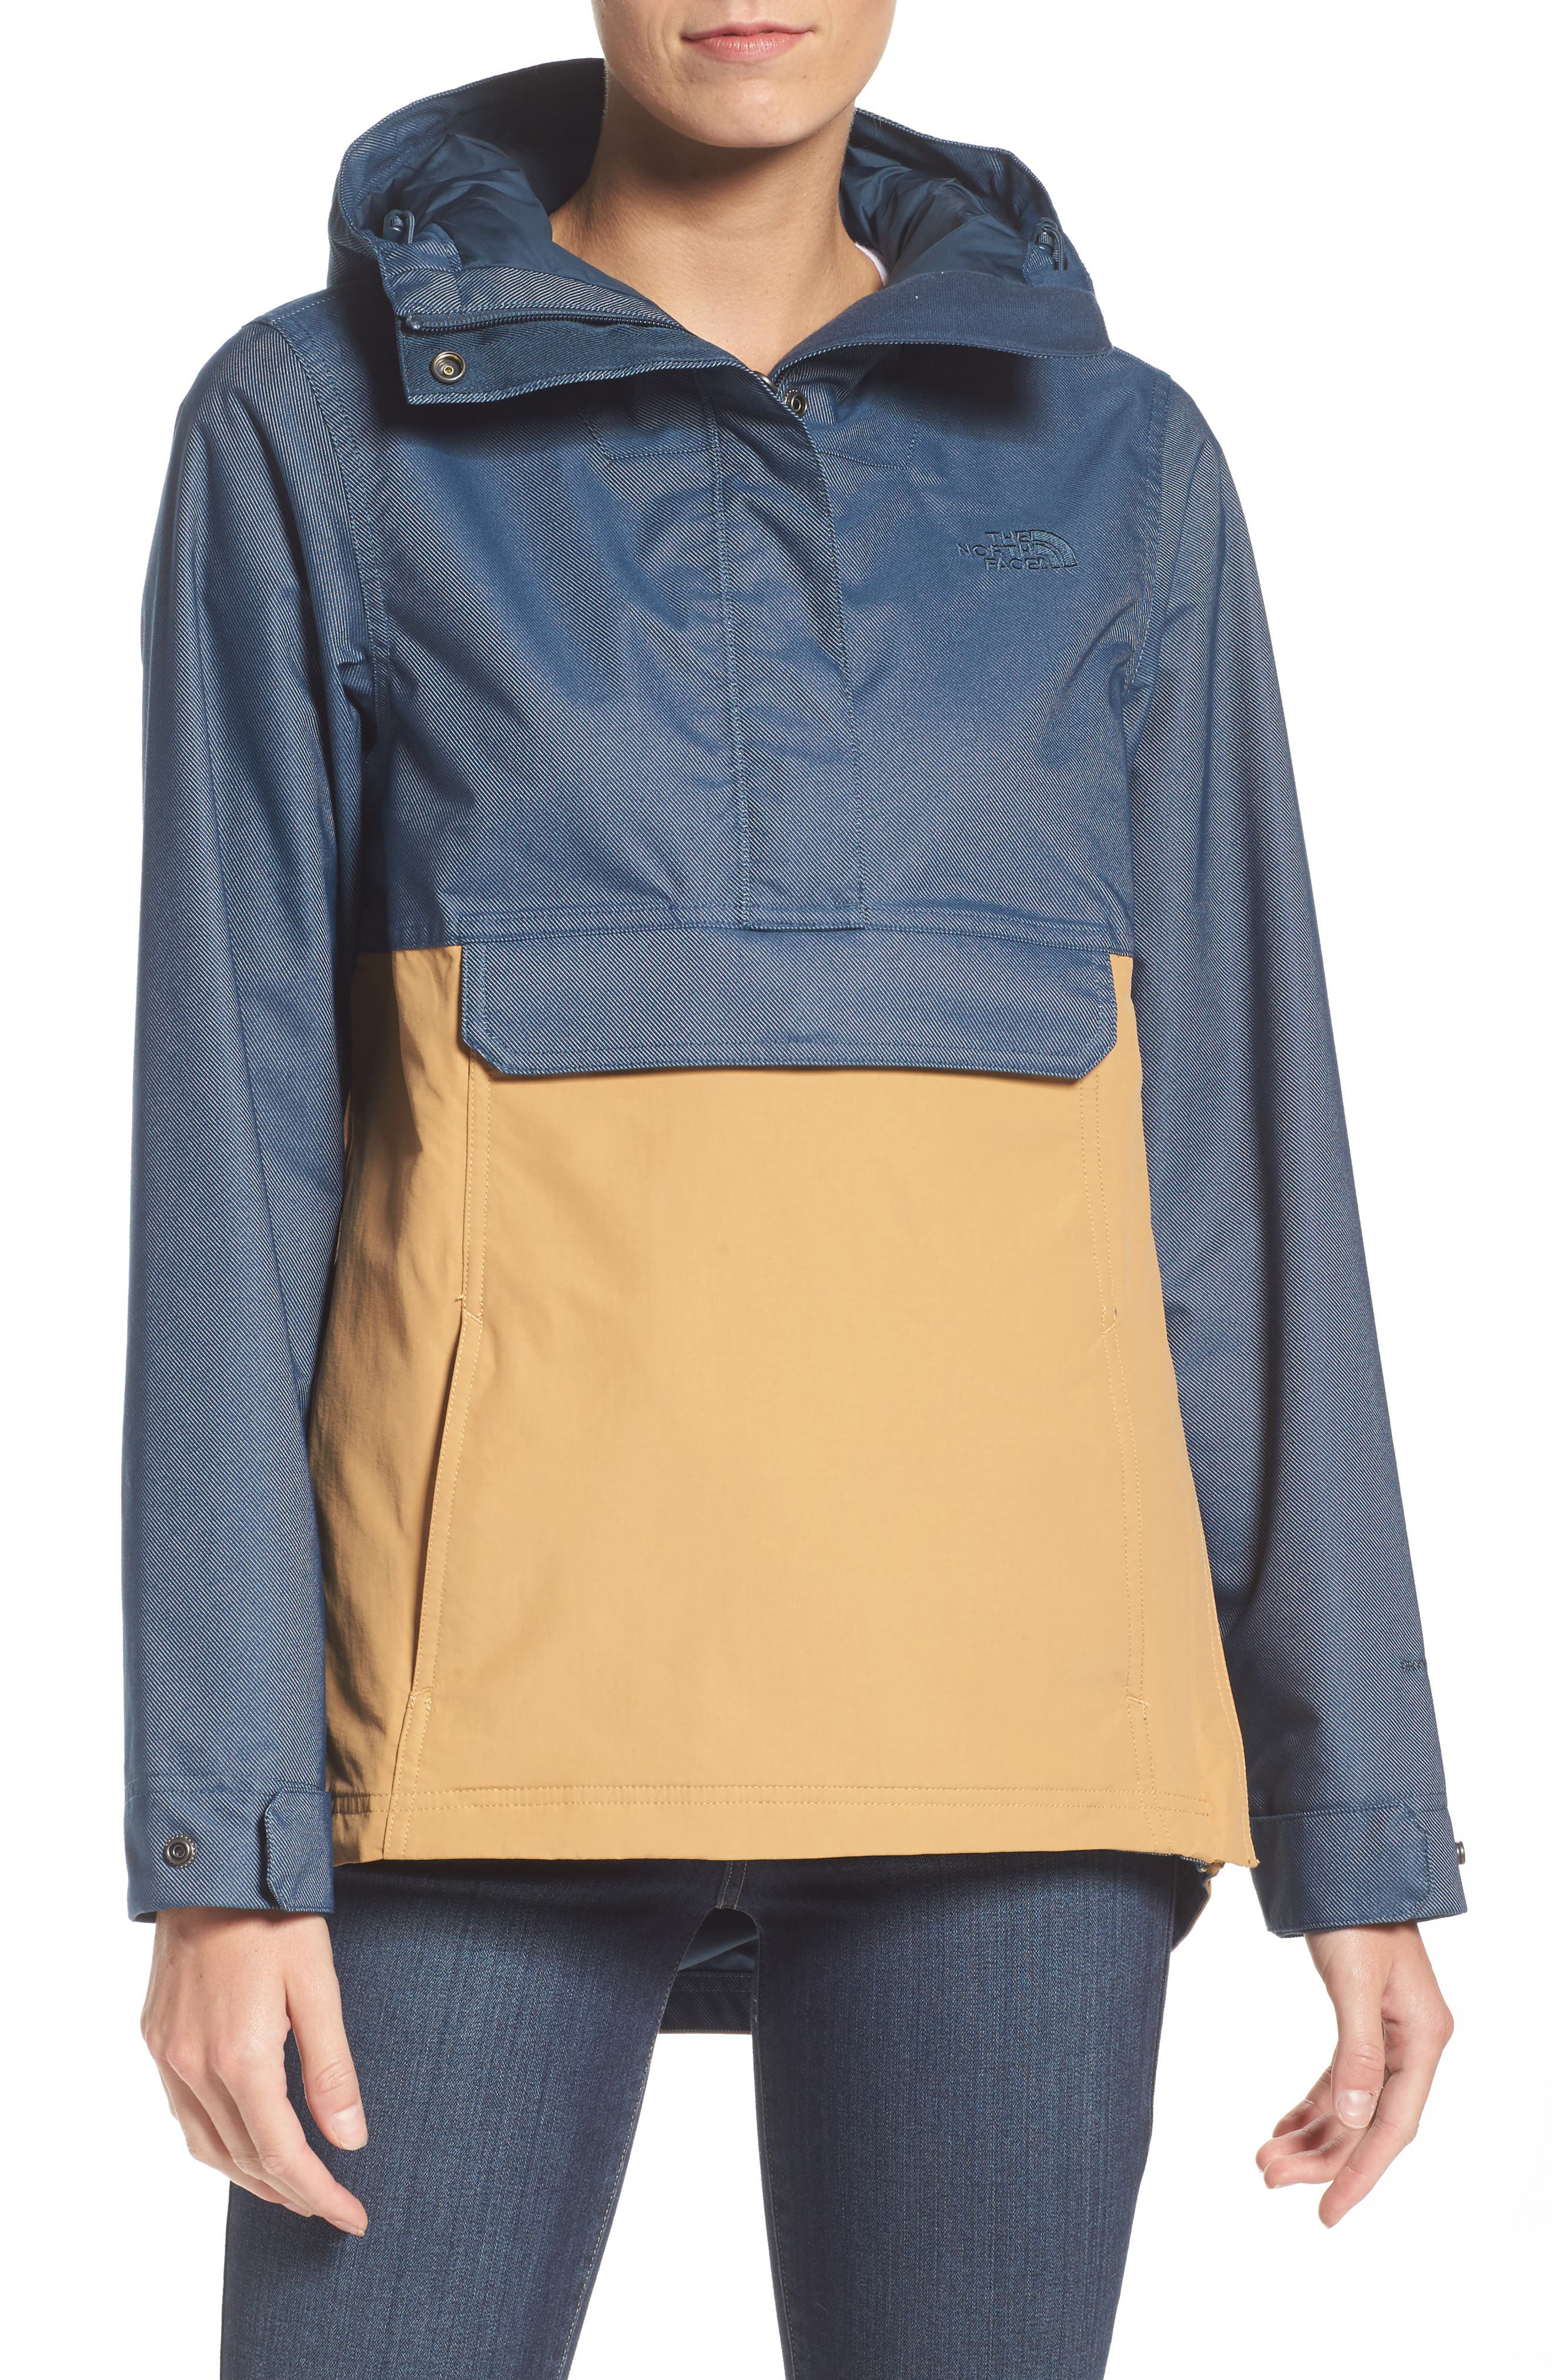 Cadet Anorak Rain Jacket,                         Main,                         color, Biscuit Tan Ink Blue